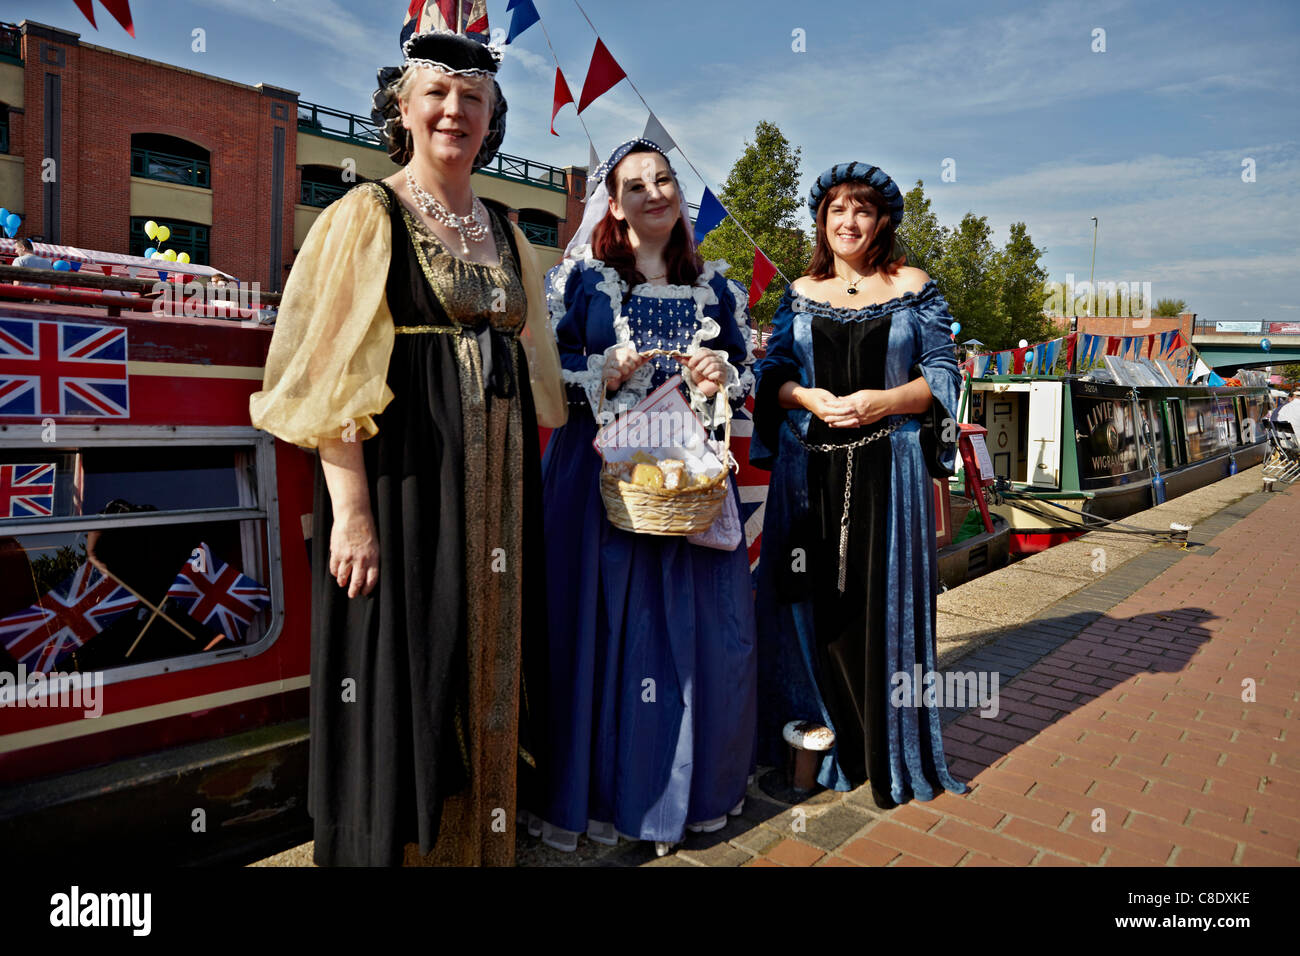 Women in medieval dress at the Banbury Canal Day. Oxfordshire England UK - Stock Image